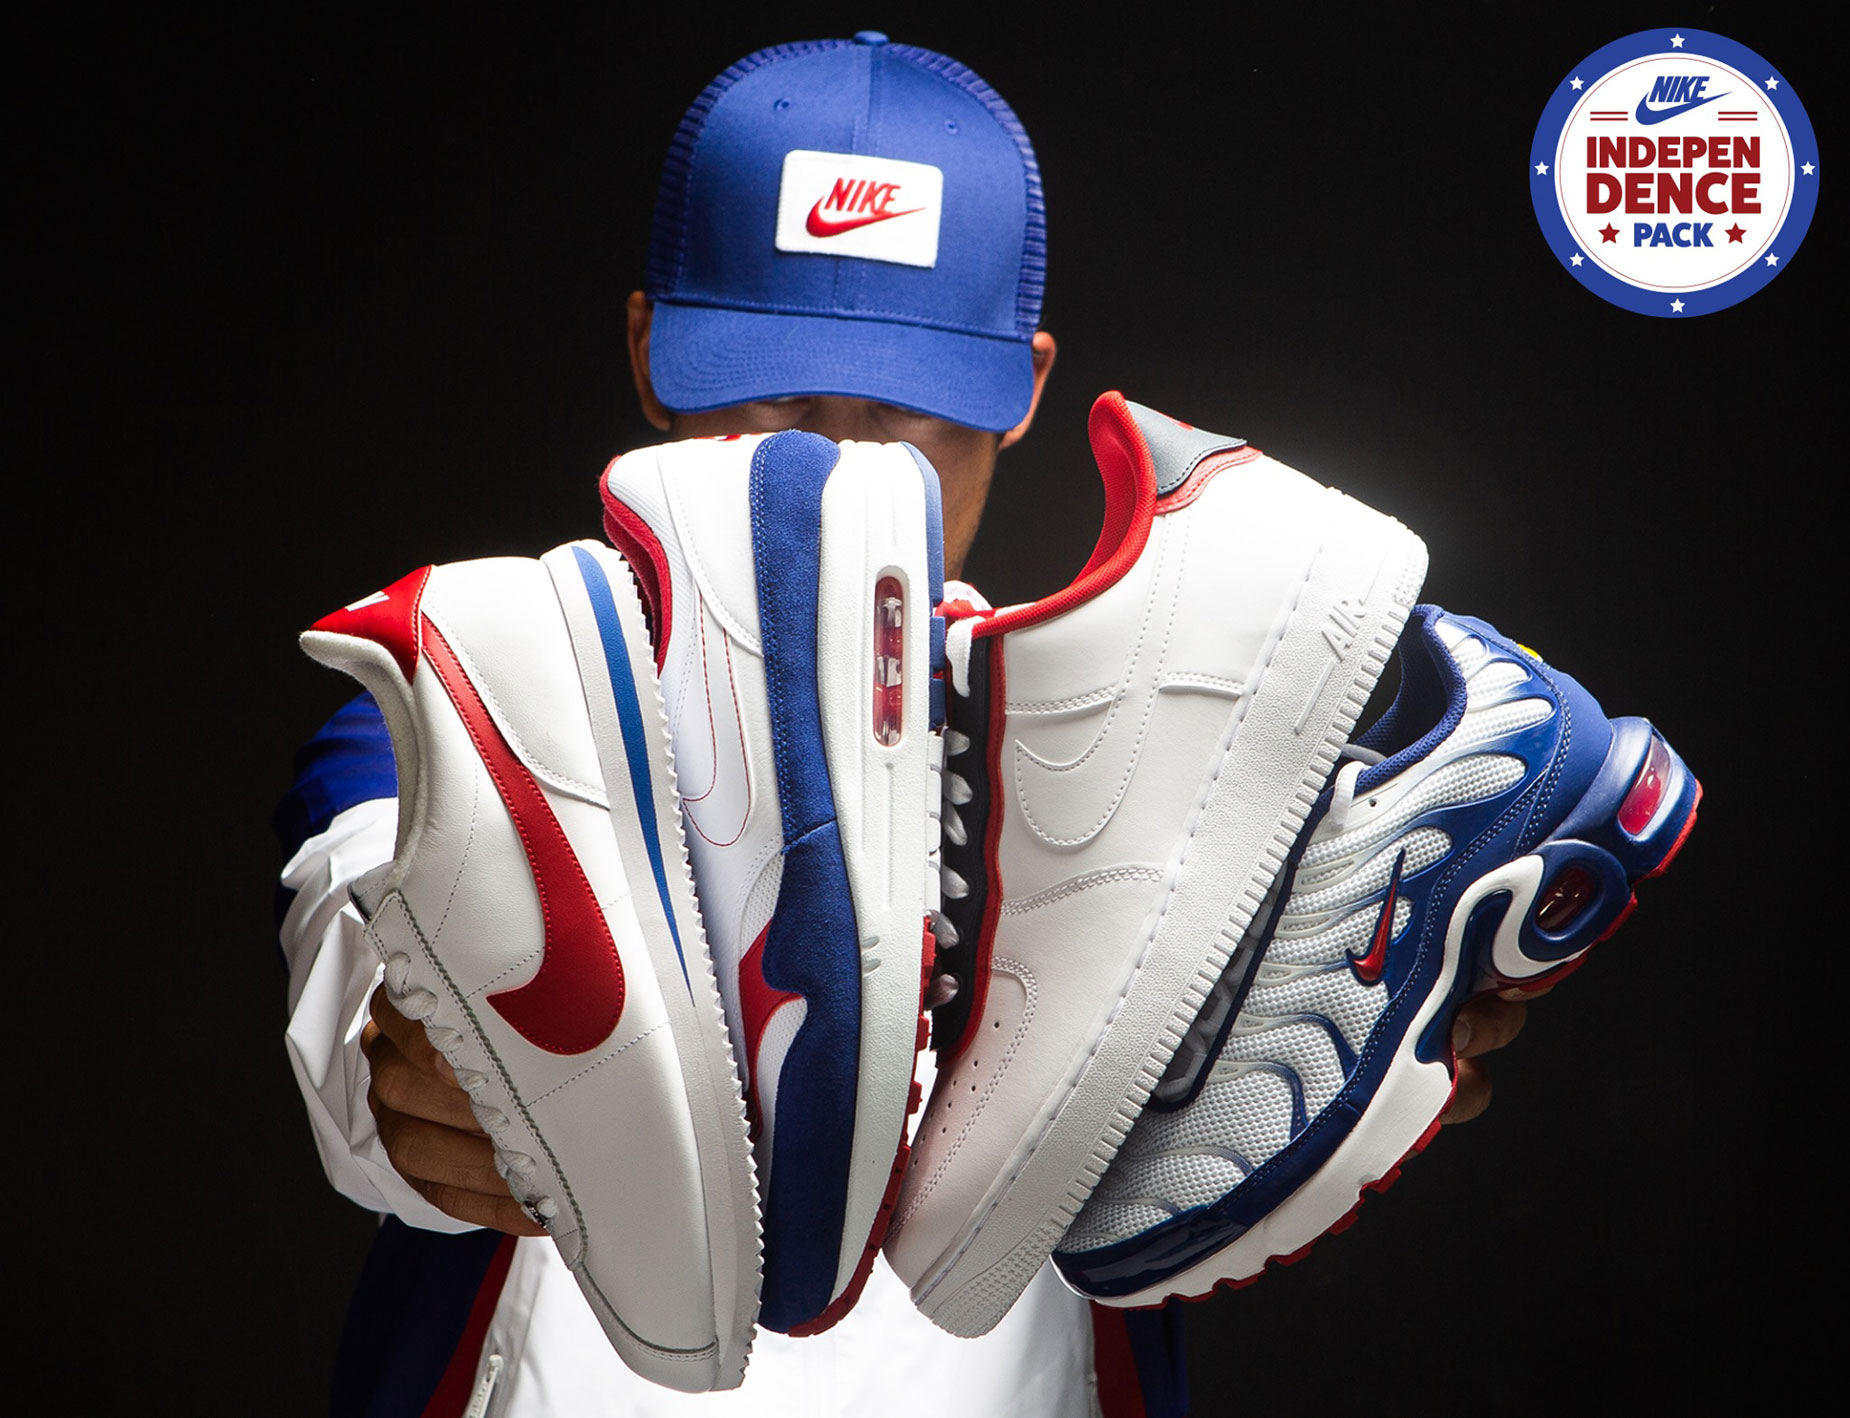 nike-americana-independence-USA-sneakers-hat-match